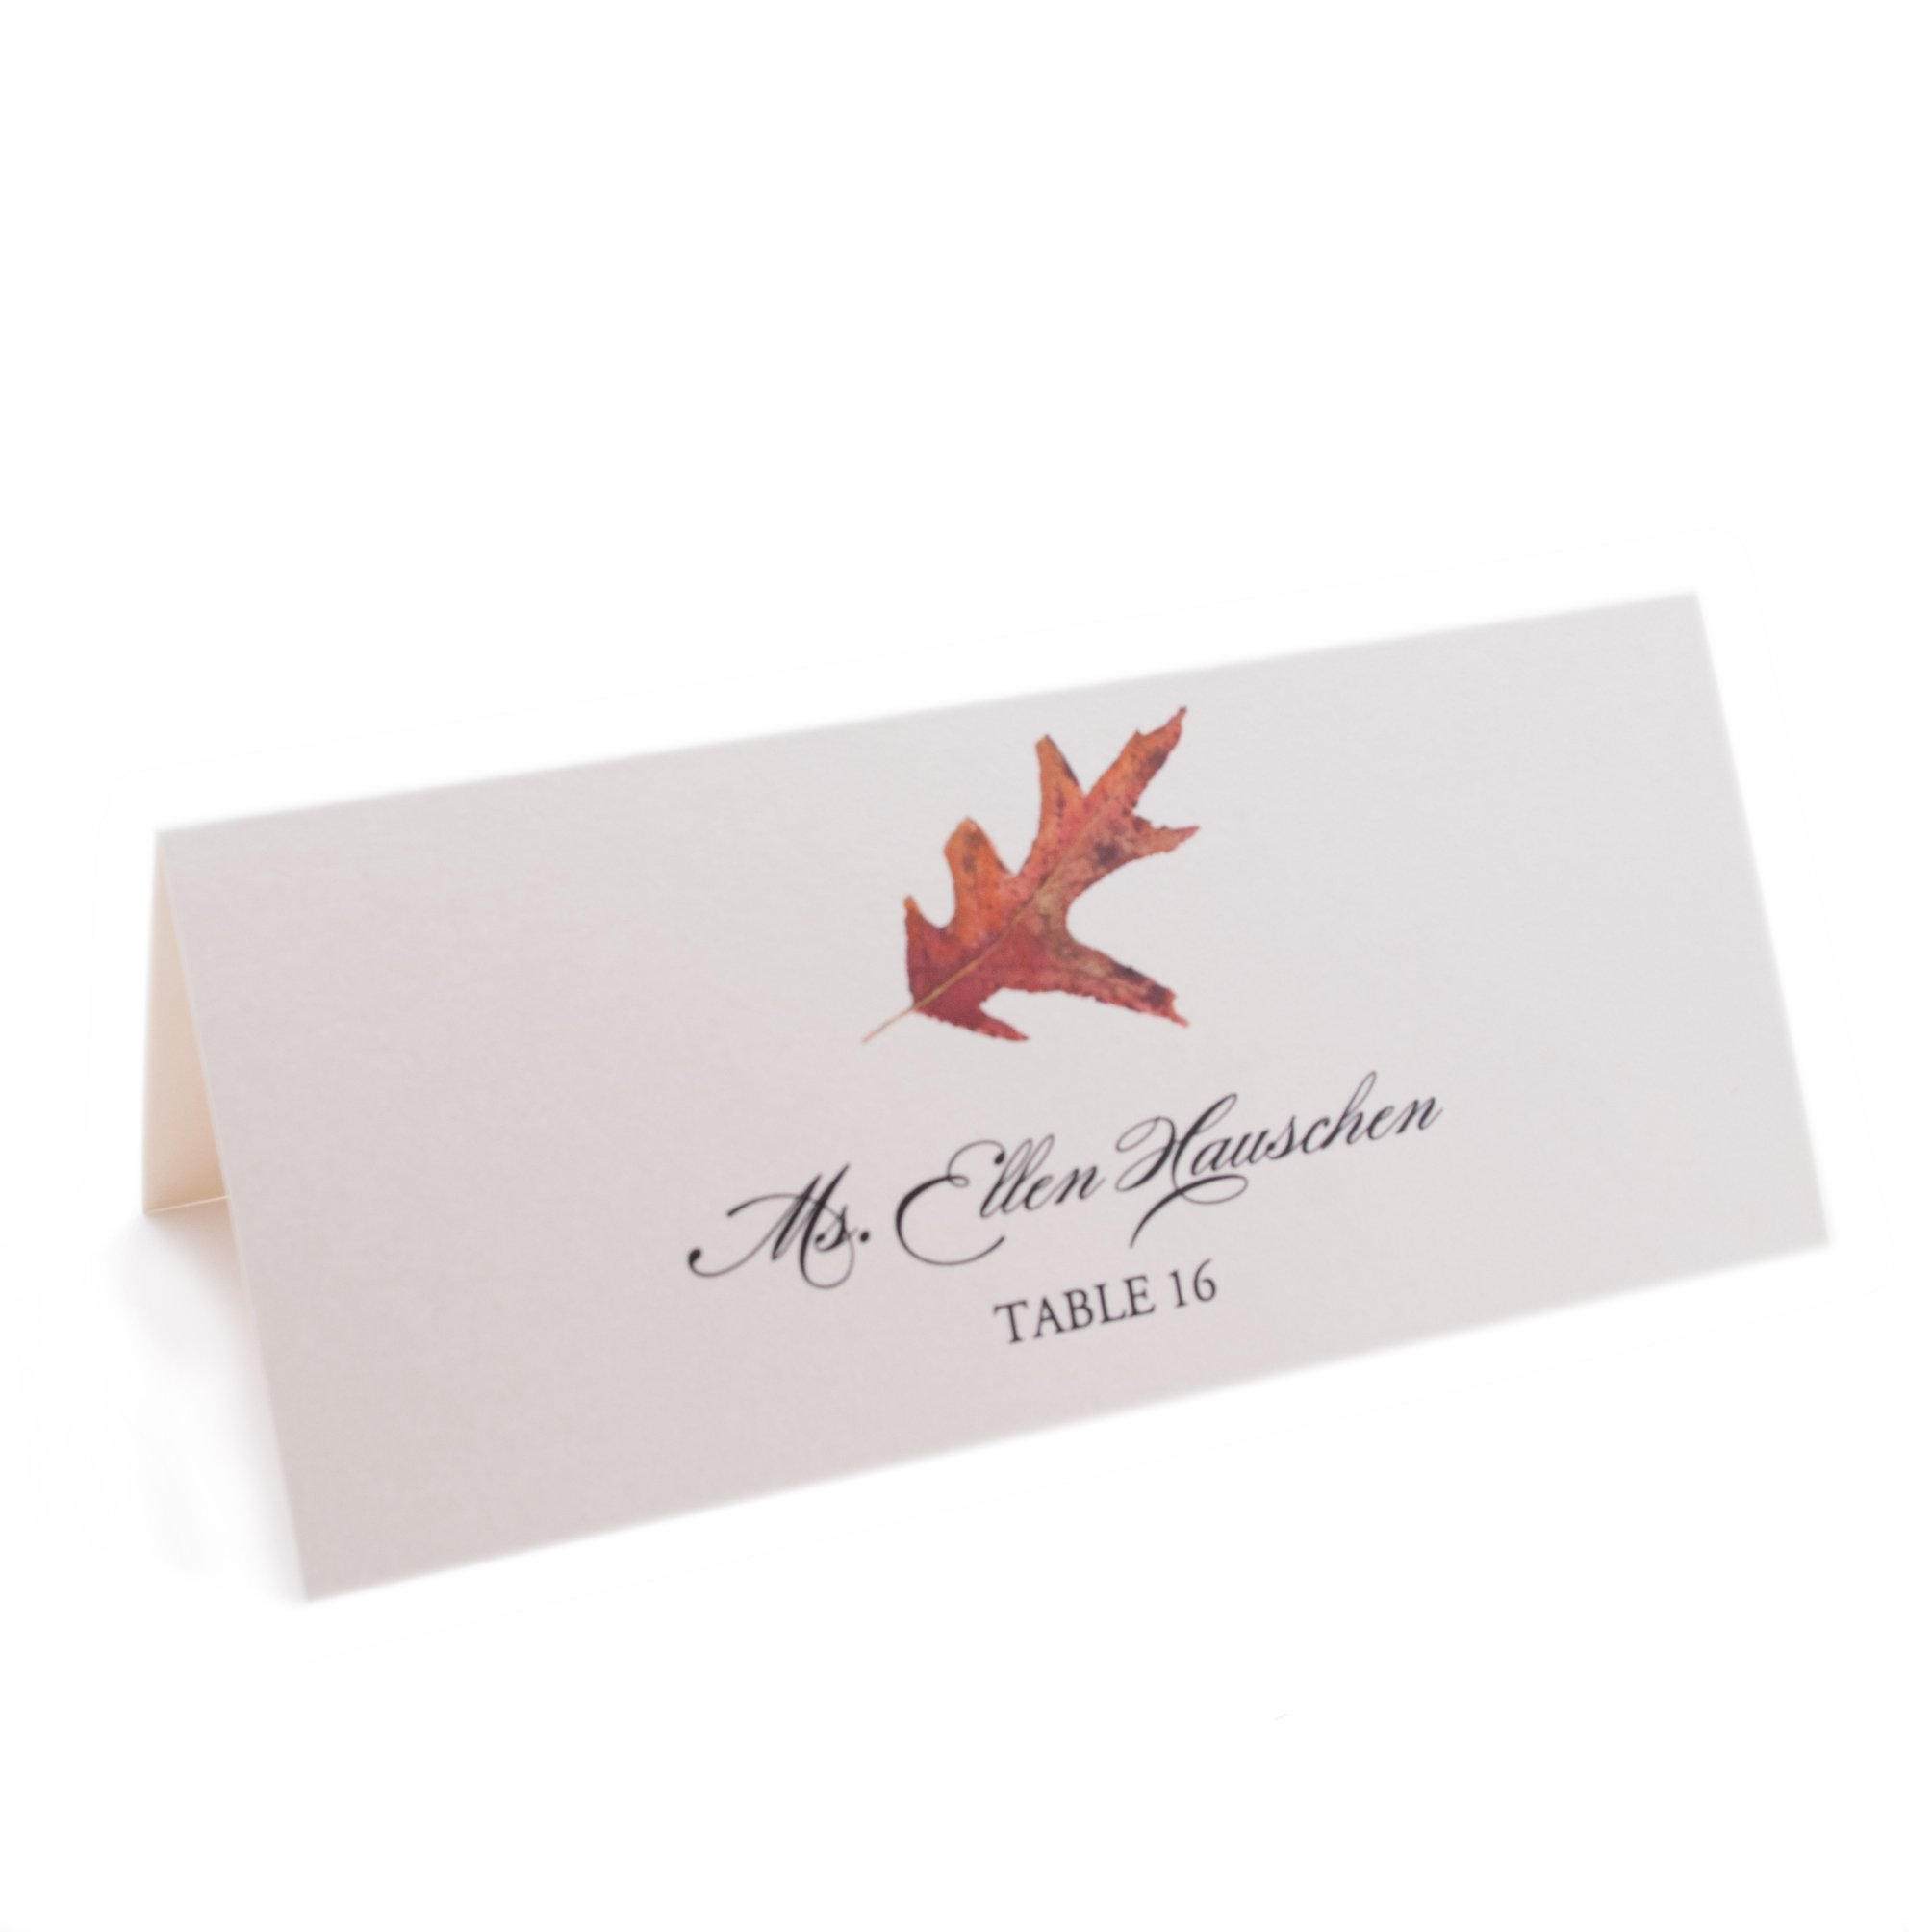 Leaf Place Cards, Assorted Designs, Champagne, Set of 375 by Documents and Designs